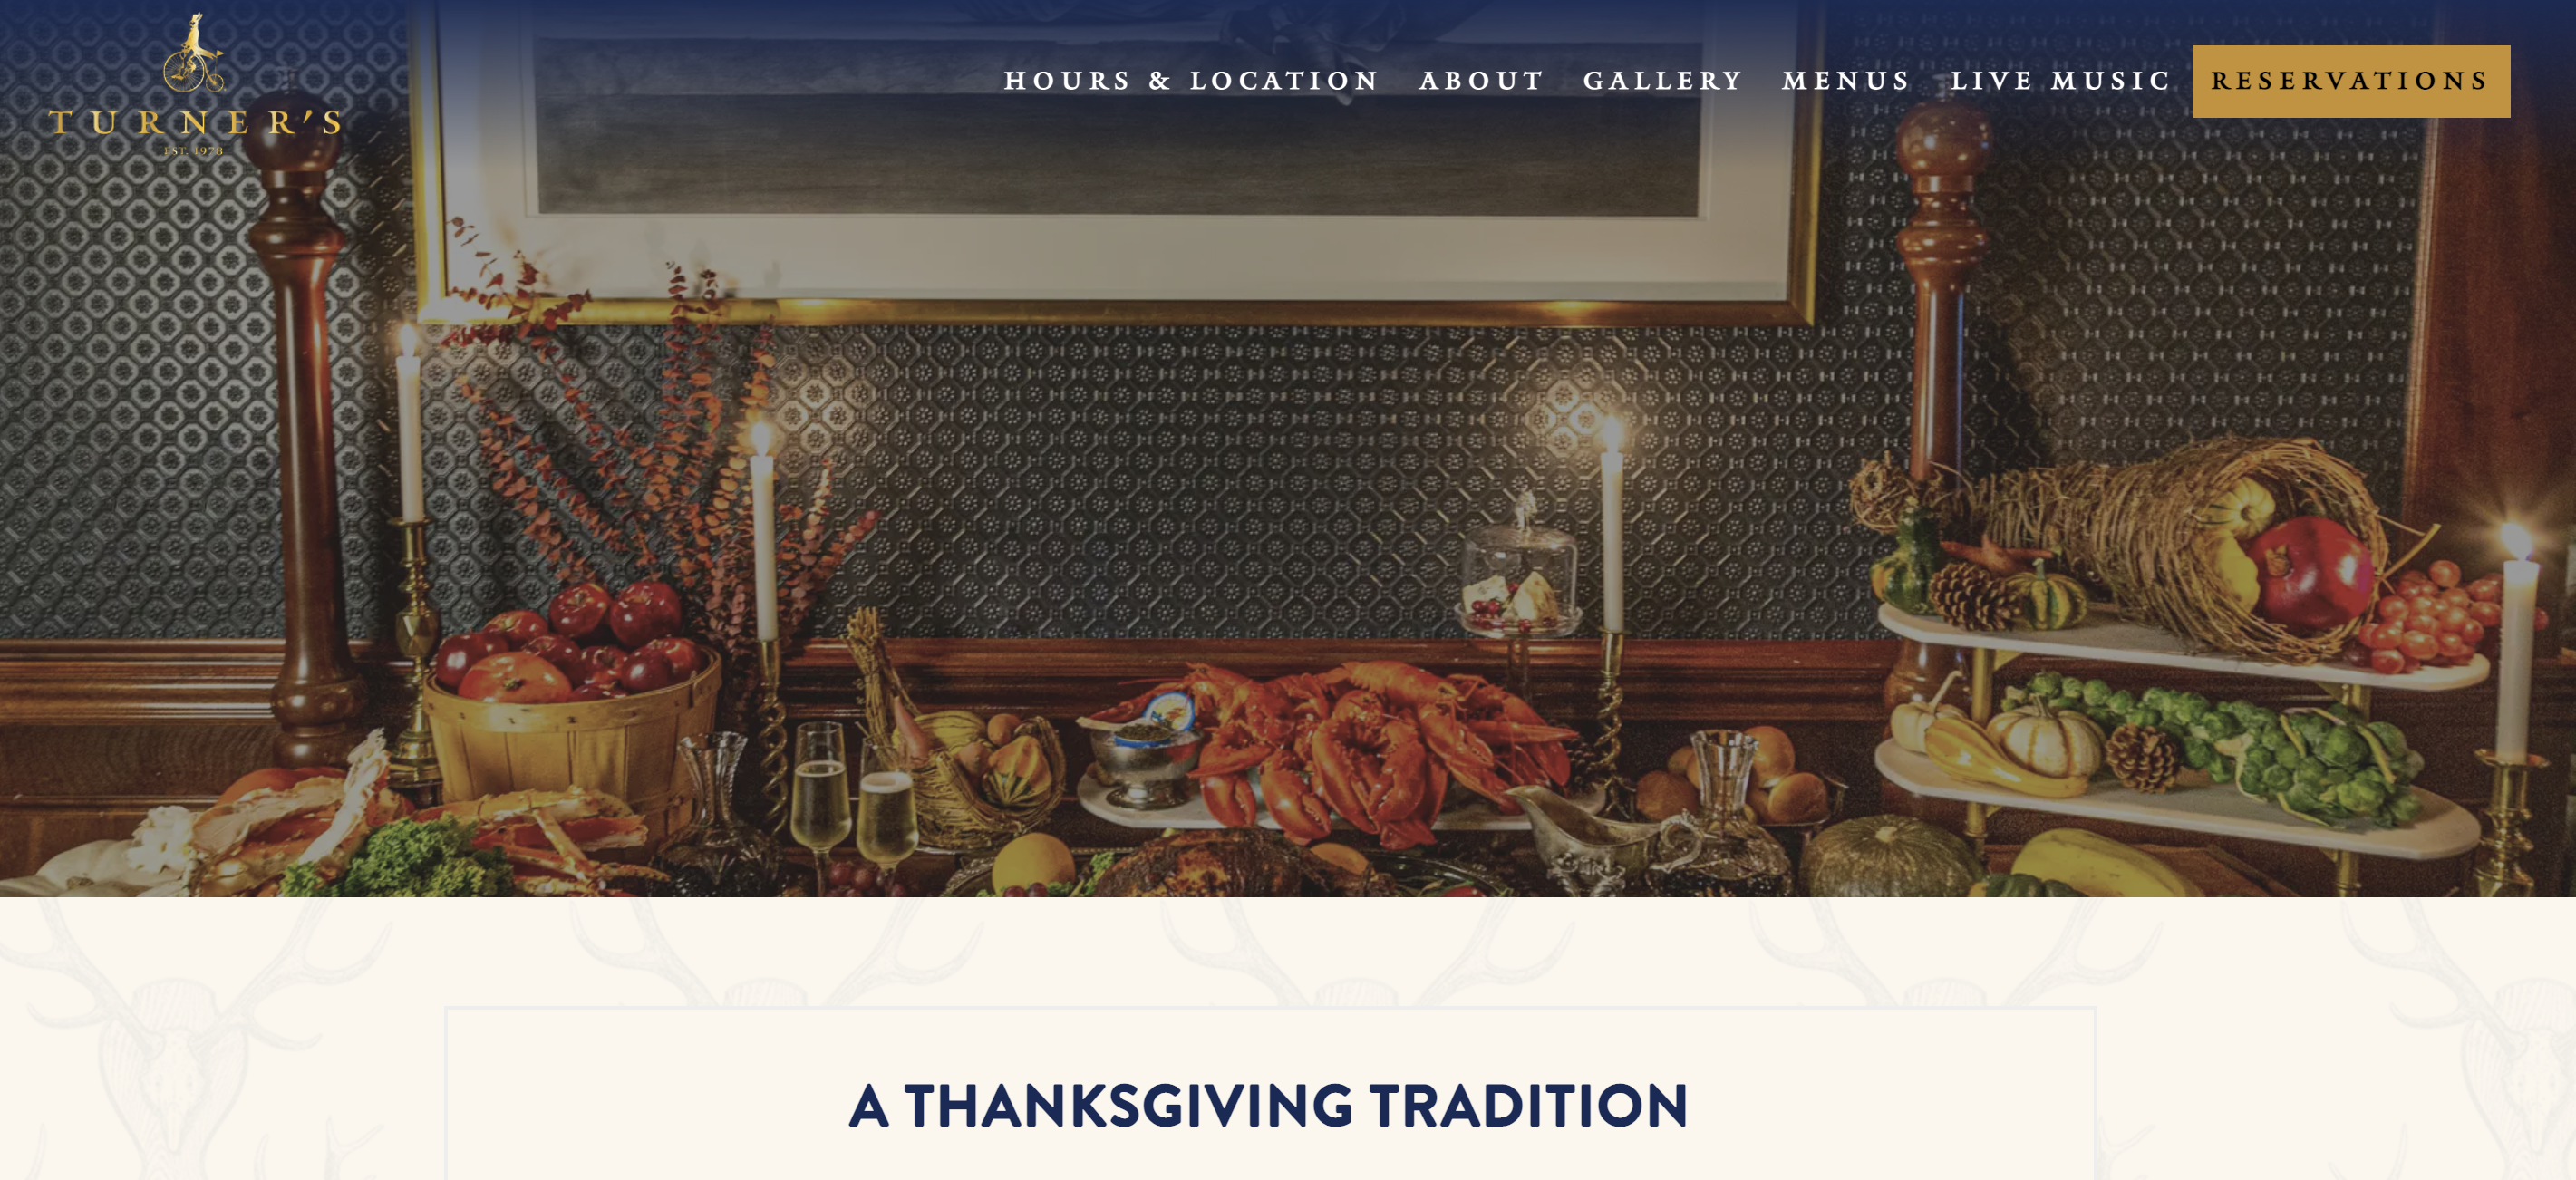 Thanksgiving Day at Turner's